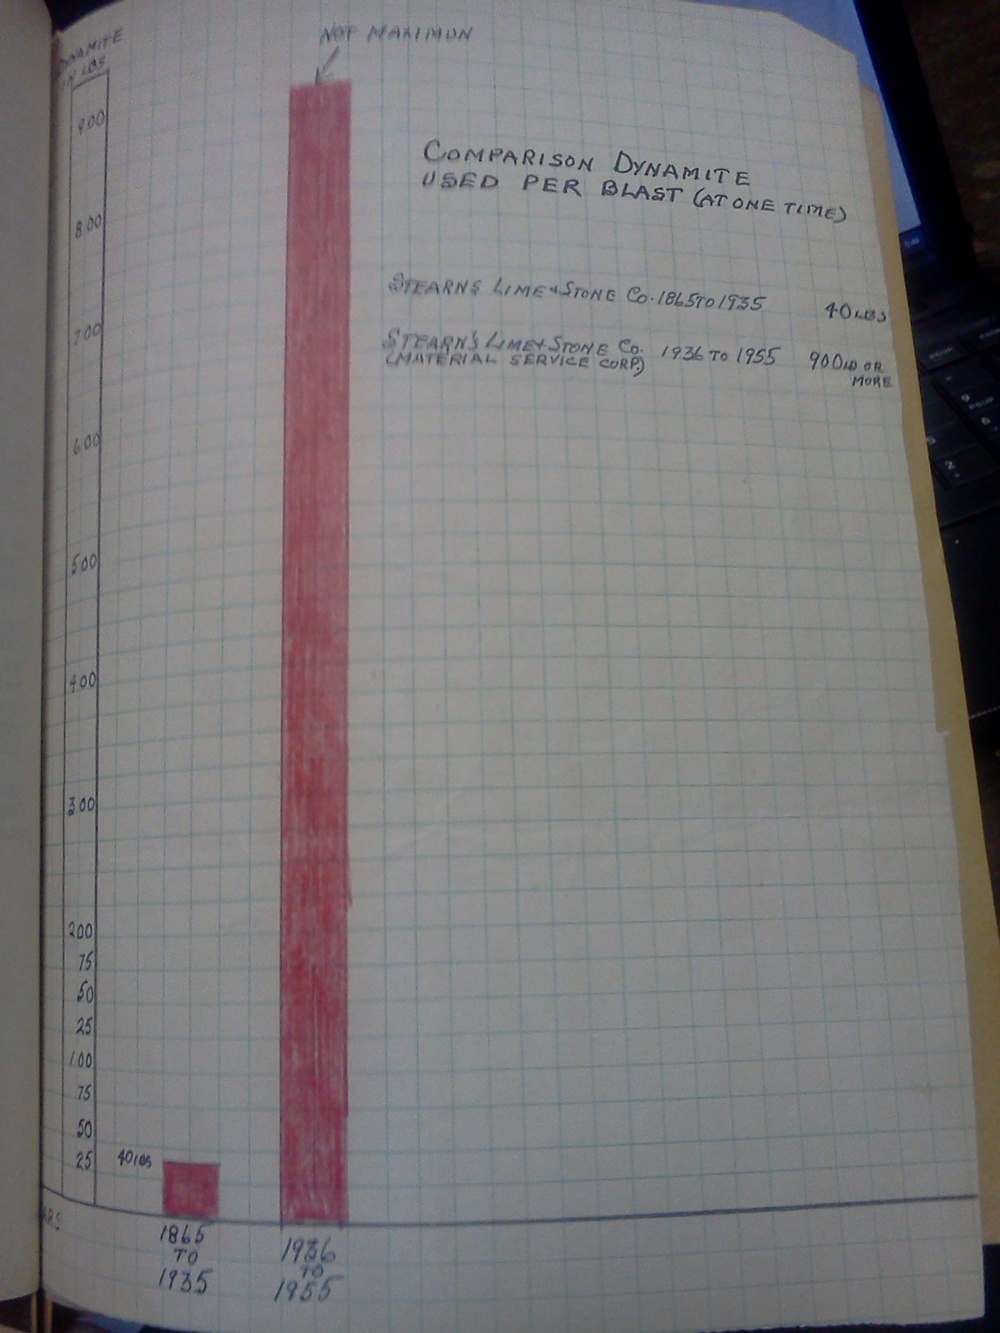 A graph depicting the dramatic increase in pounds of dynamite used per blast at the rock quarry (from 40 lbs to upwards of 900 lbs). There are many letters detailing individuals being hit by falling chunks of their ceilings, items broken in houses by the explosions, residents having to keep windows closed because of the dust, and rubble flying a block away from the quarry.